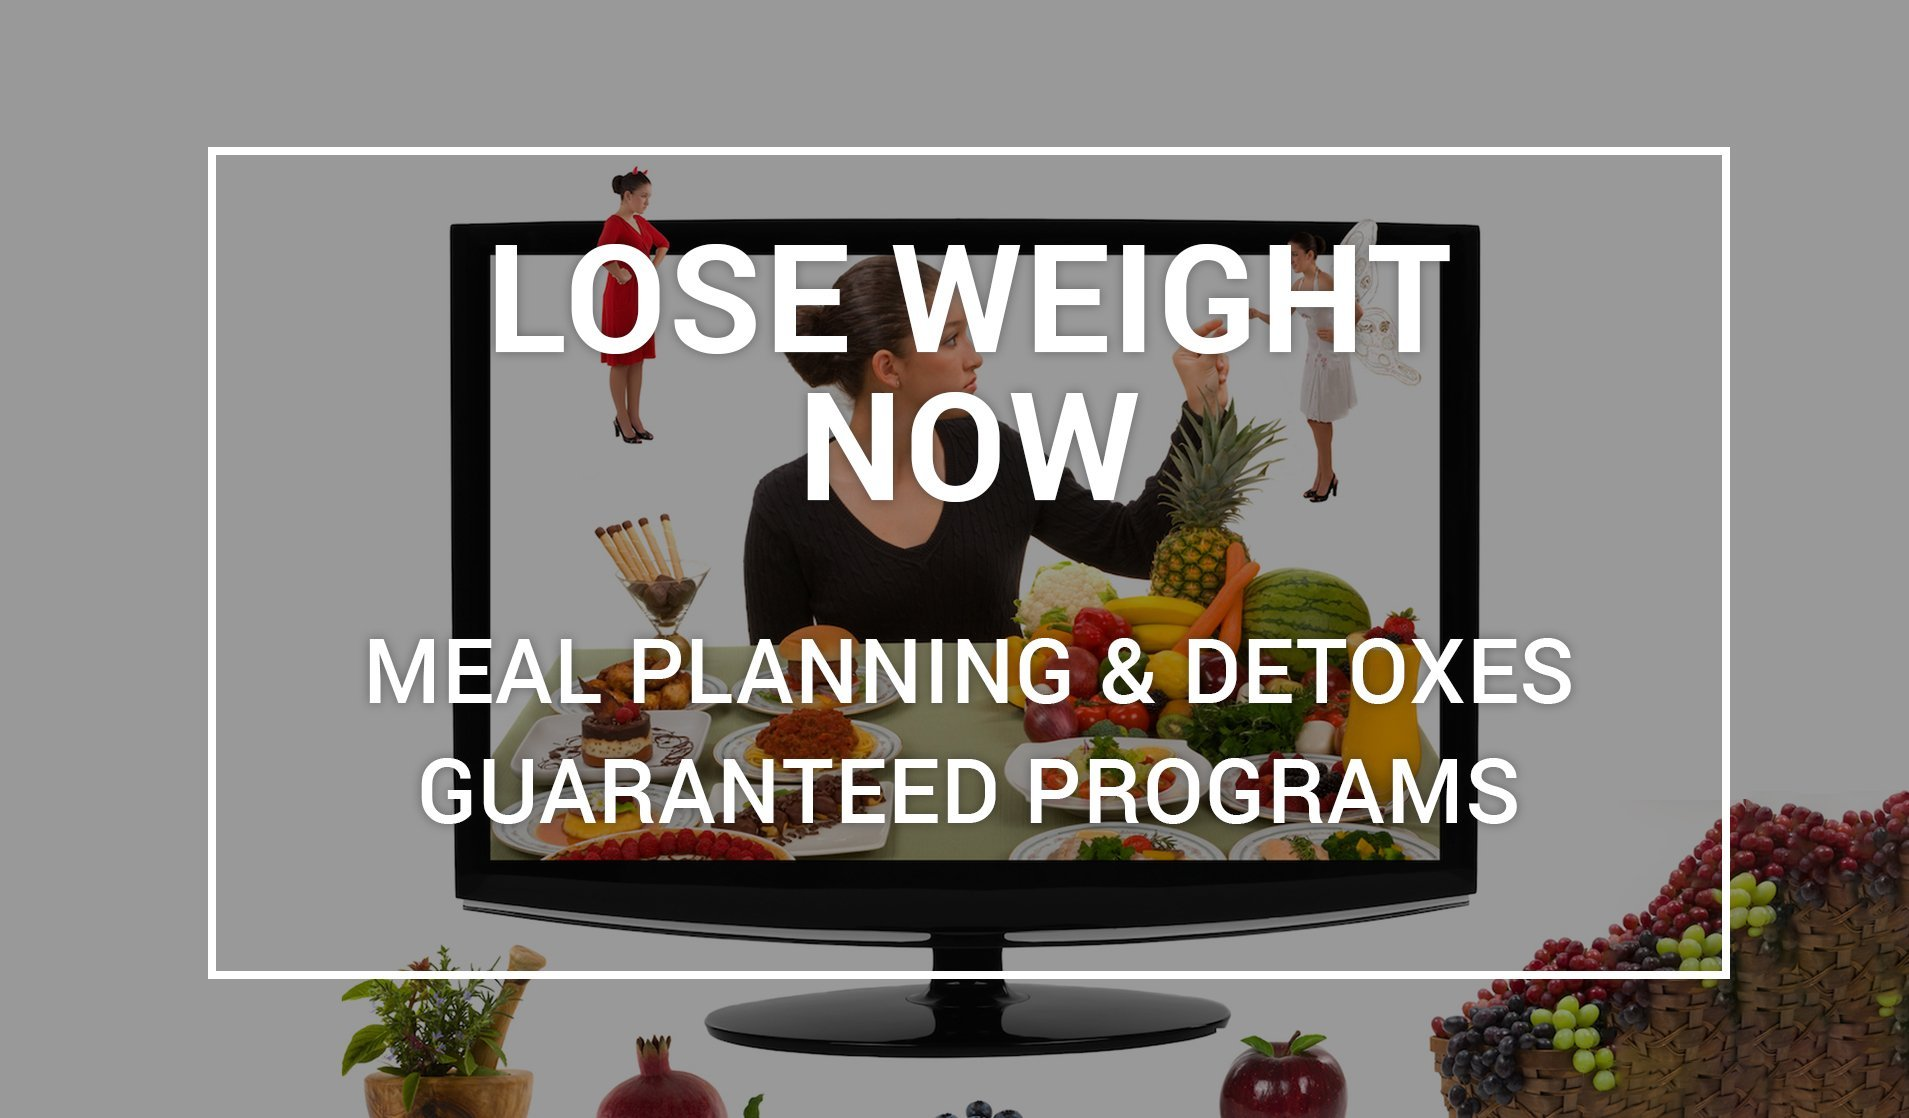 lose weight plate main